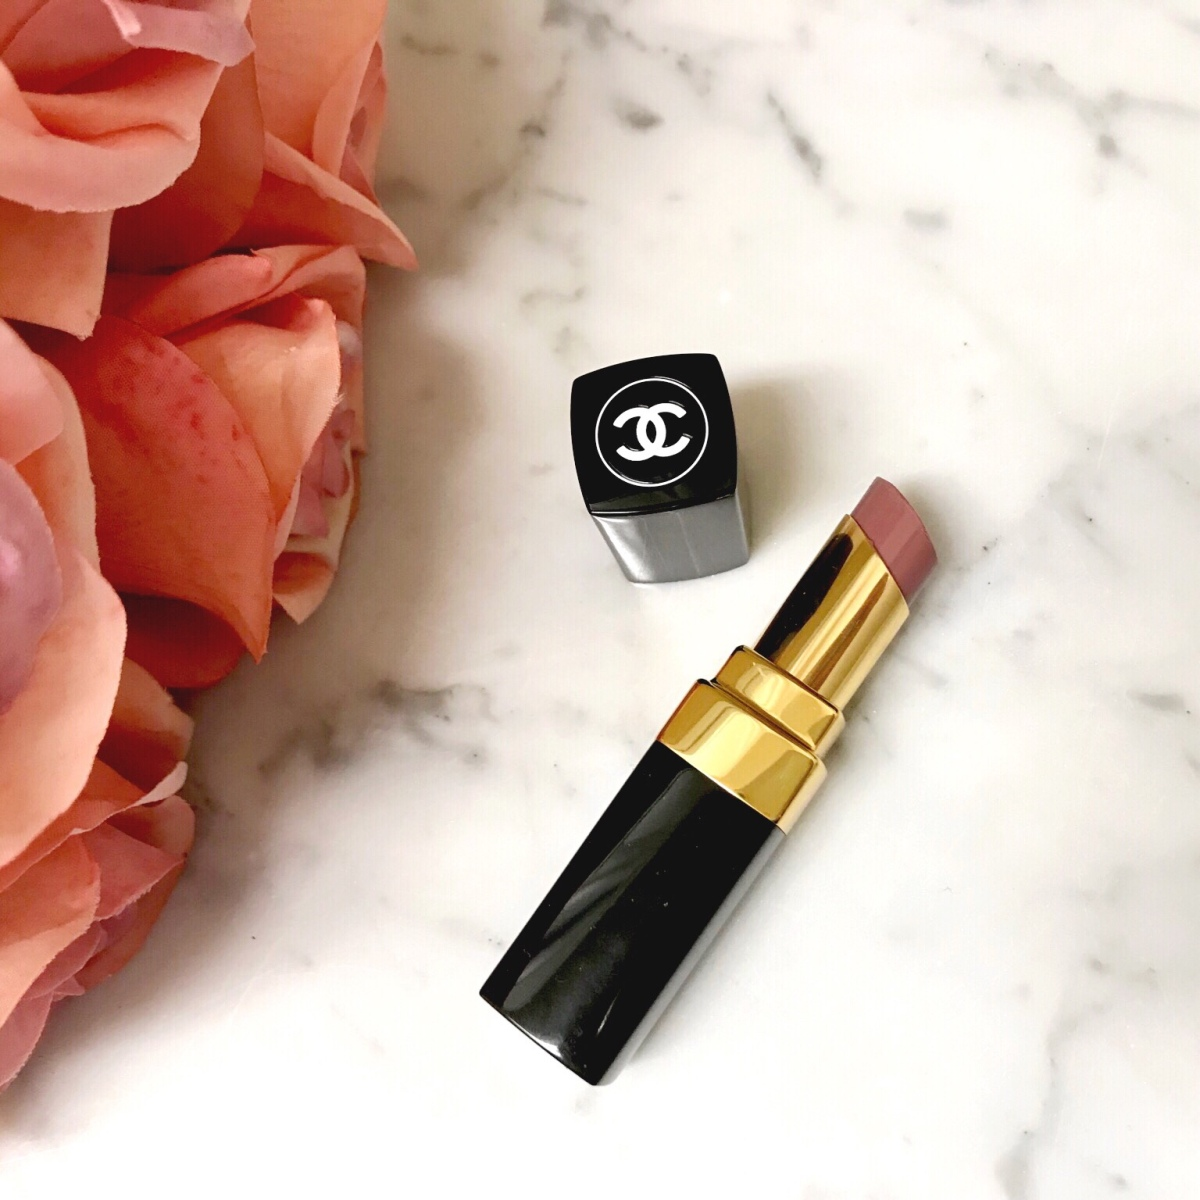 Chanel Rouge Coco Shine Lipstick Review | 93 Intime